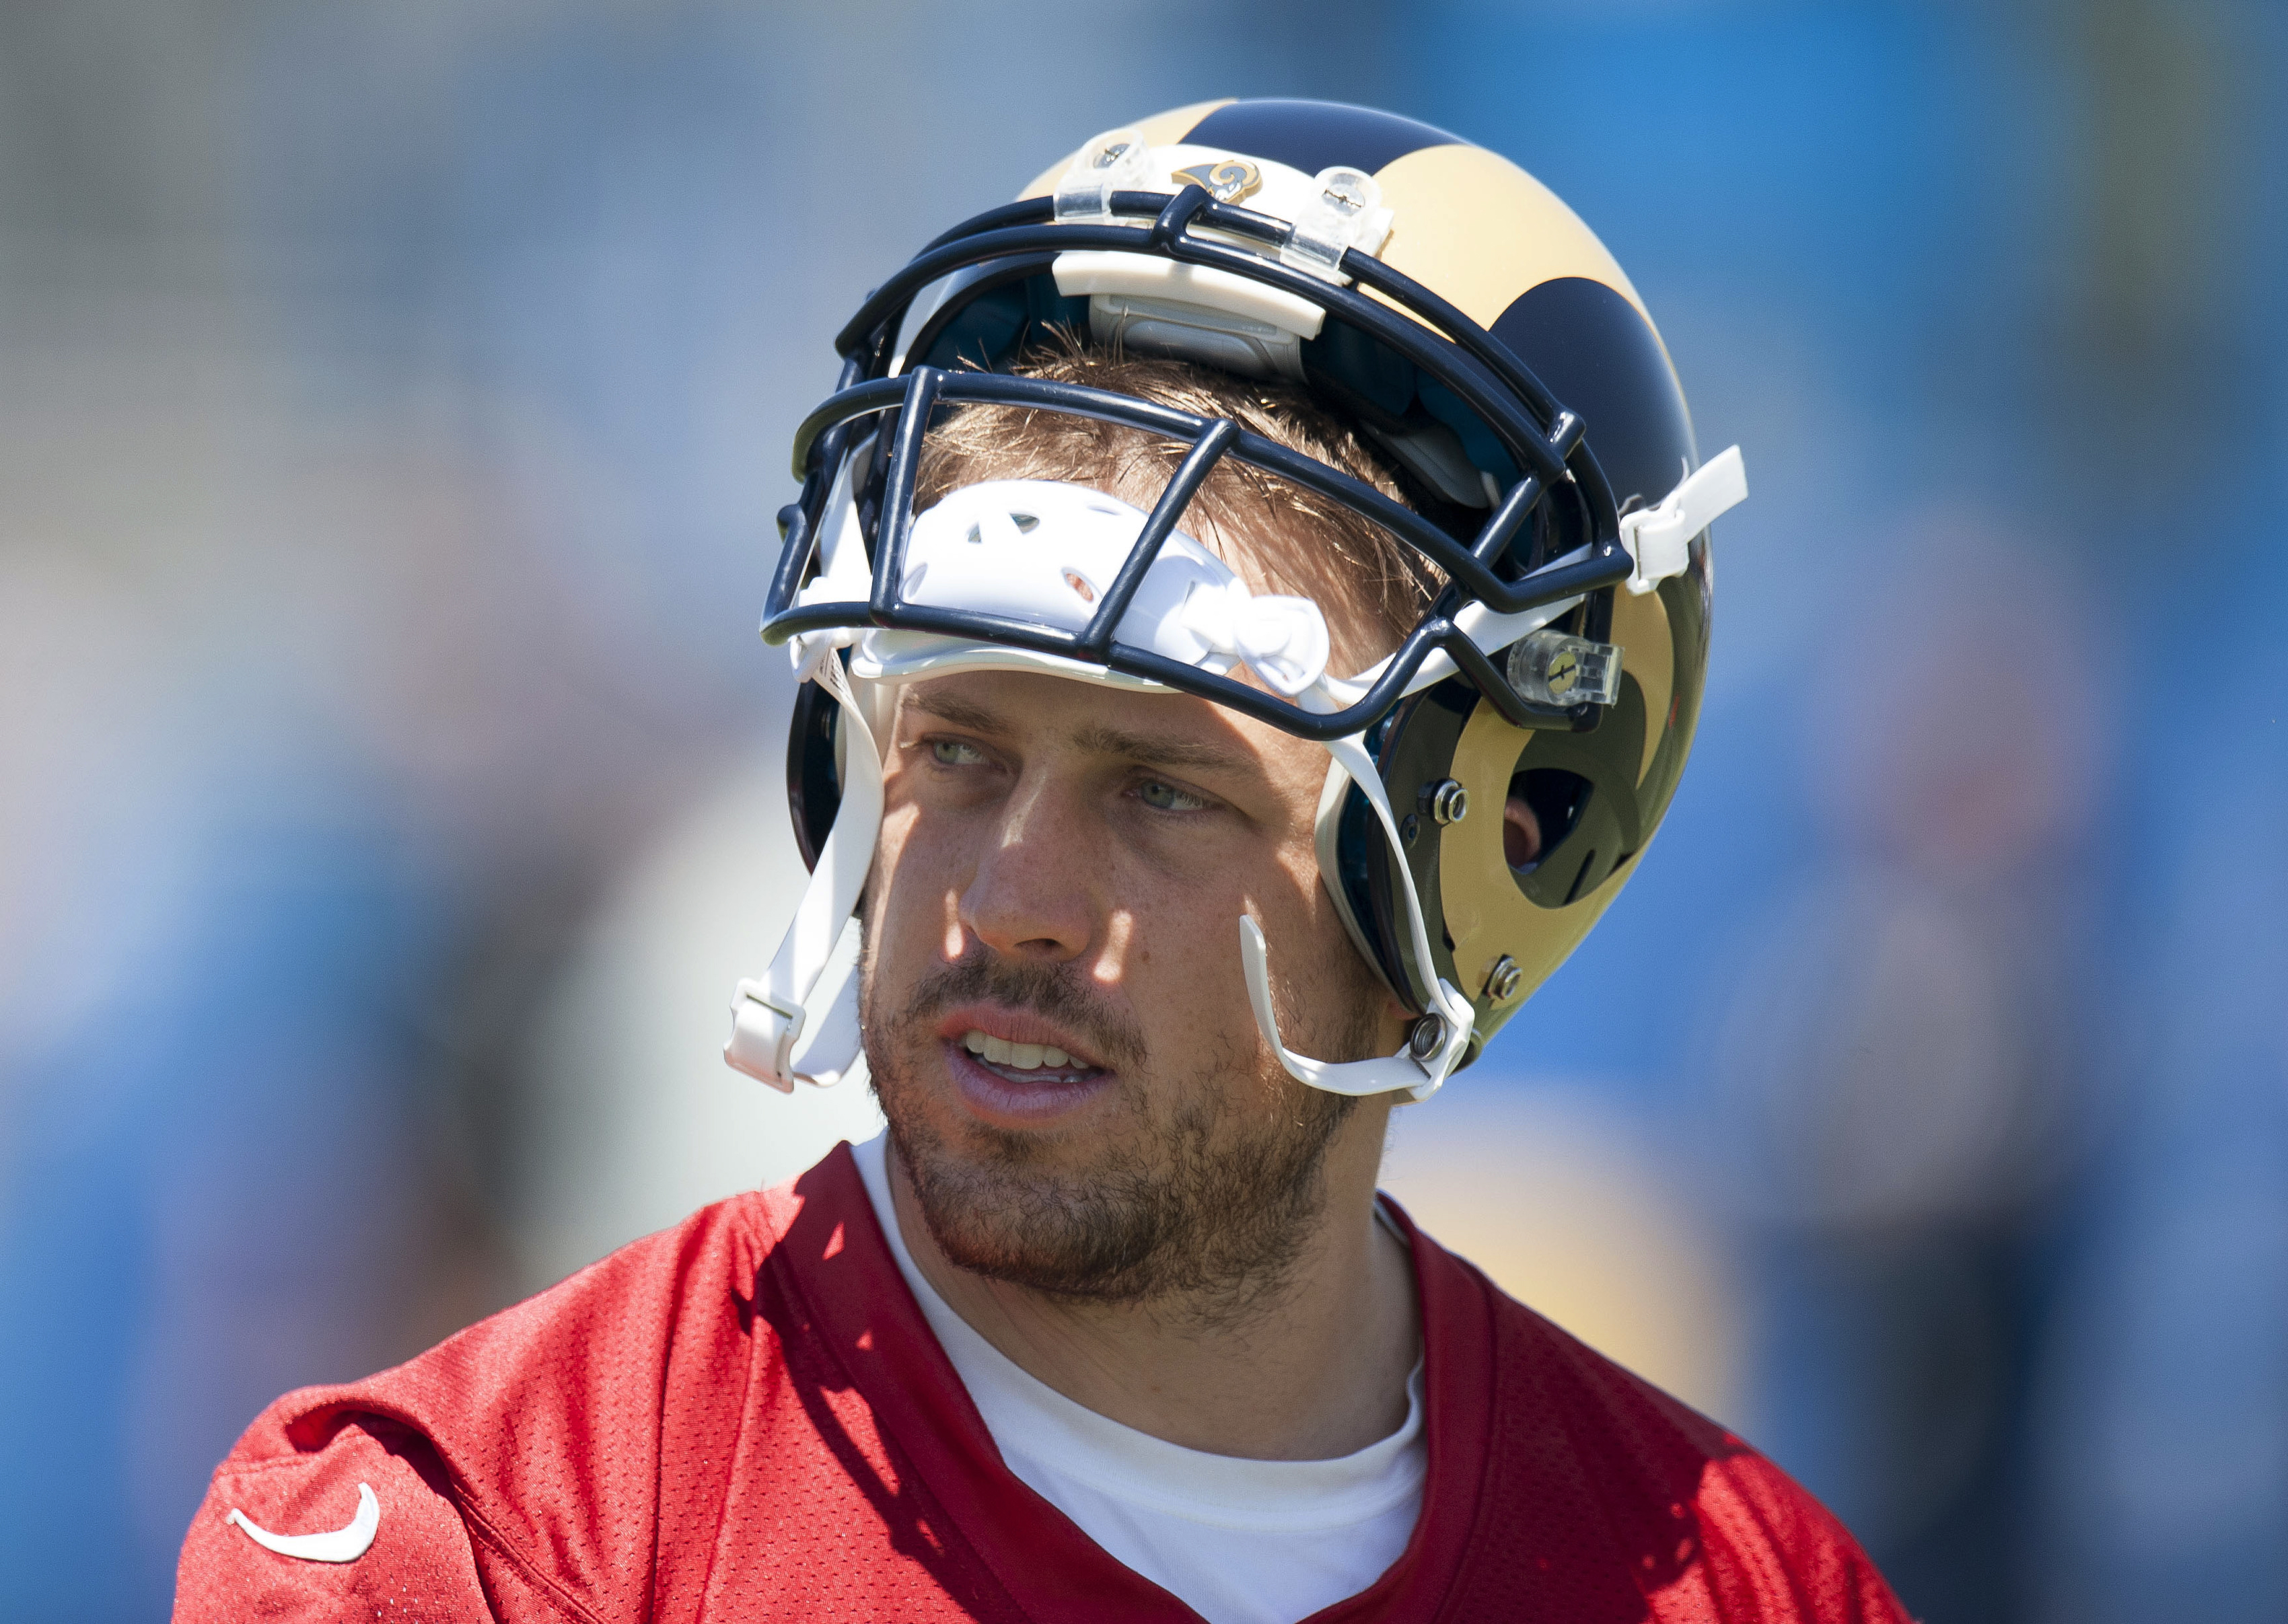 Los Angeles Rams quarterback Case Keenum heads tot the locker room after practice at the NFL football team's training camp, Thursday, Aug. 11, 2016, in Irvine, Calif. (Kevin Sullivan/The Orange County Register via AP)